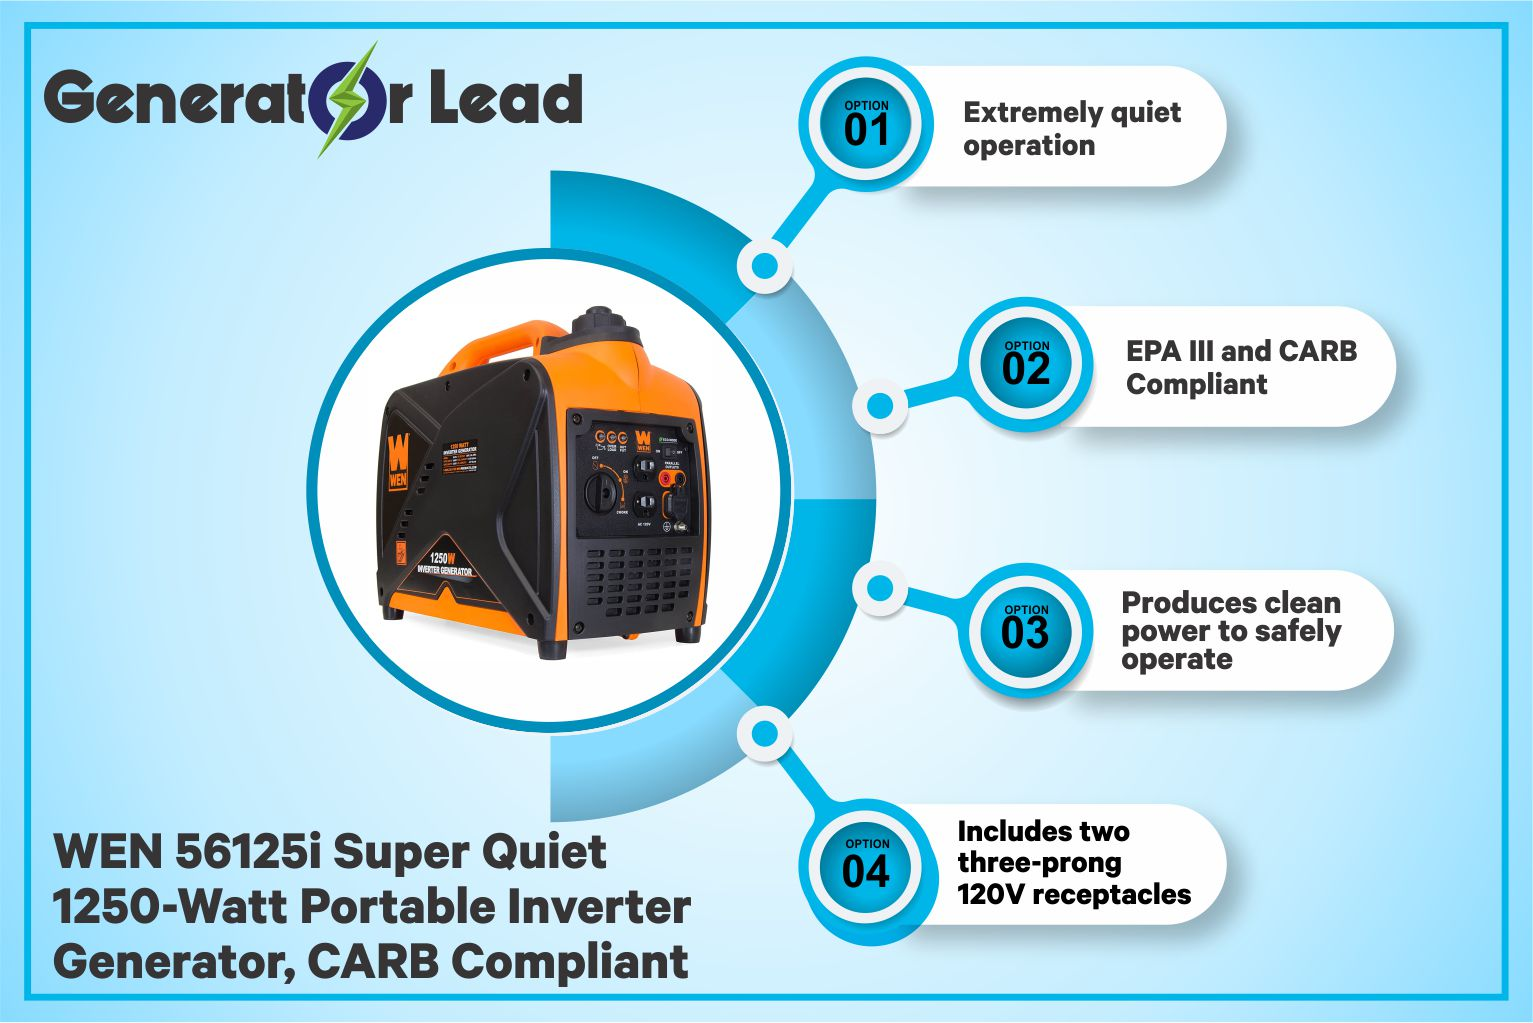 WEN 56125i Super Quiet 1250-Watt Portable Inverter Generator, CARB Compliant infographic